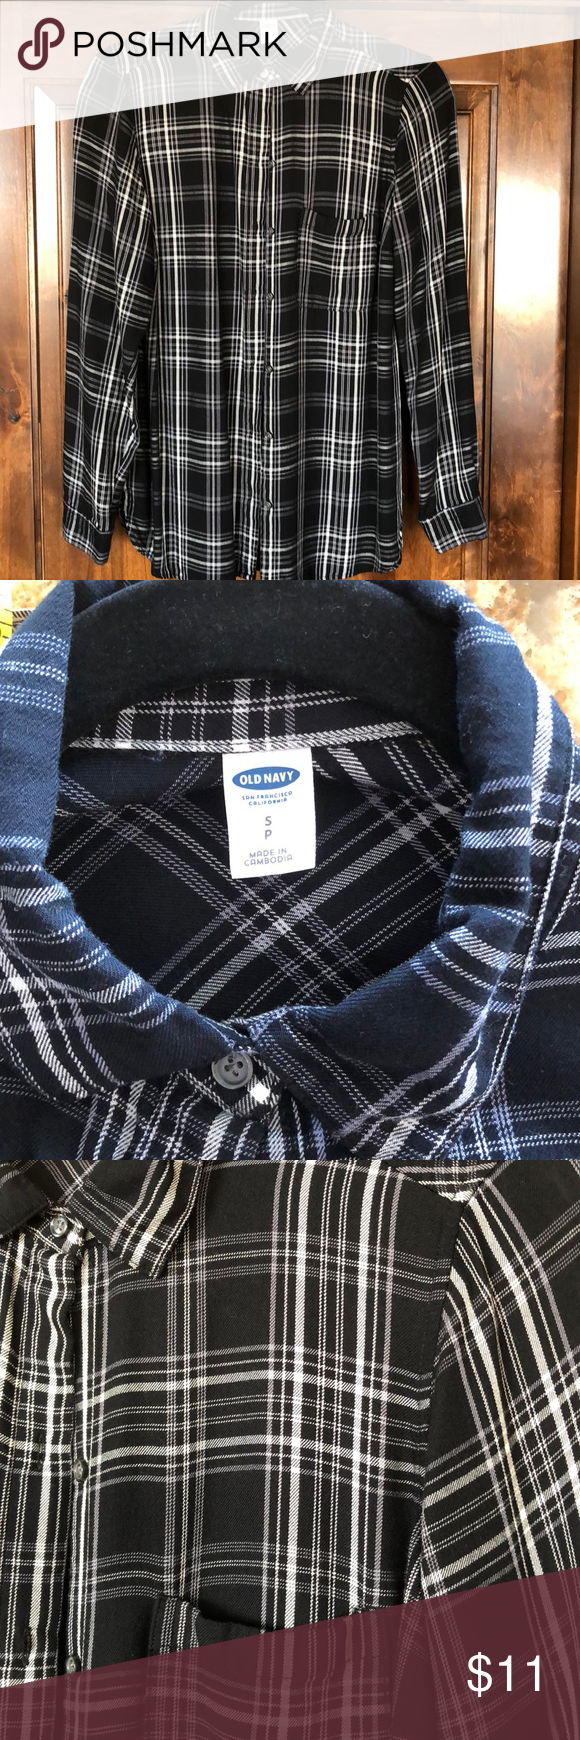 Flannel shirt black and grey  Old Navy Soft Flannel Plaid Shirt size S  White long sleeve